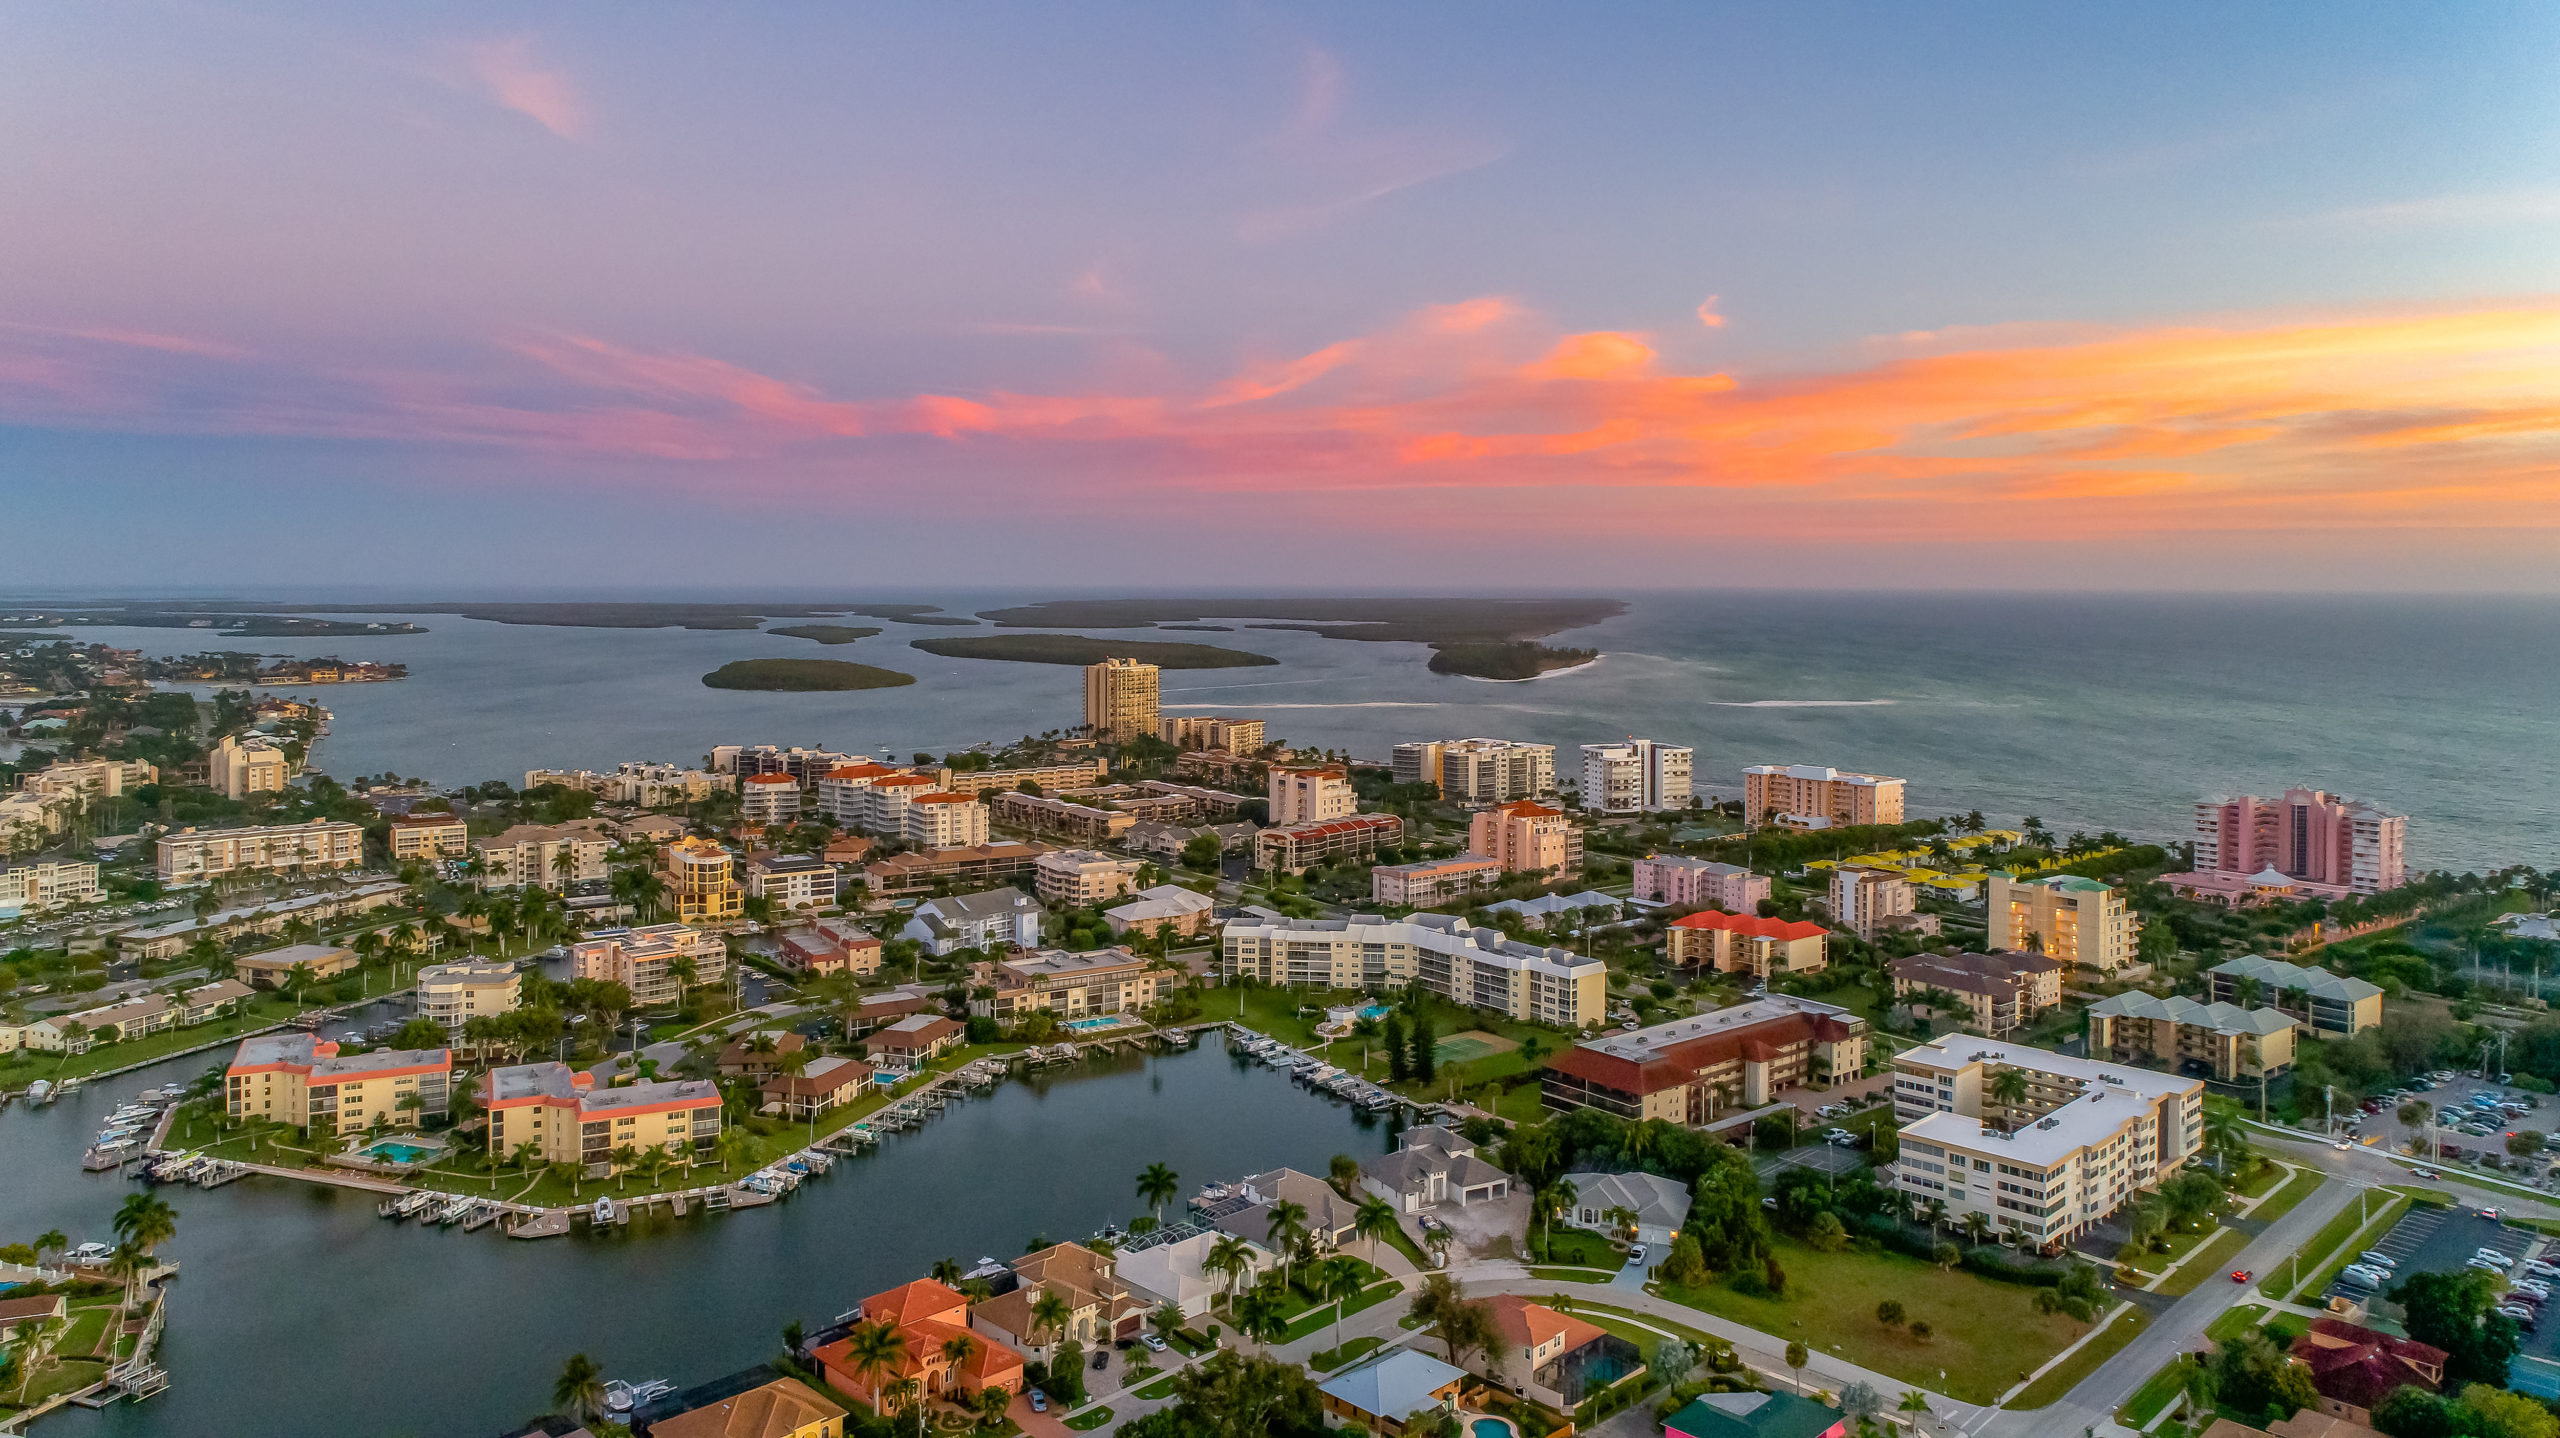 South end of Marco Island